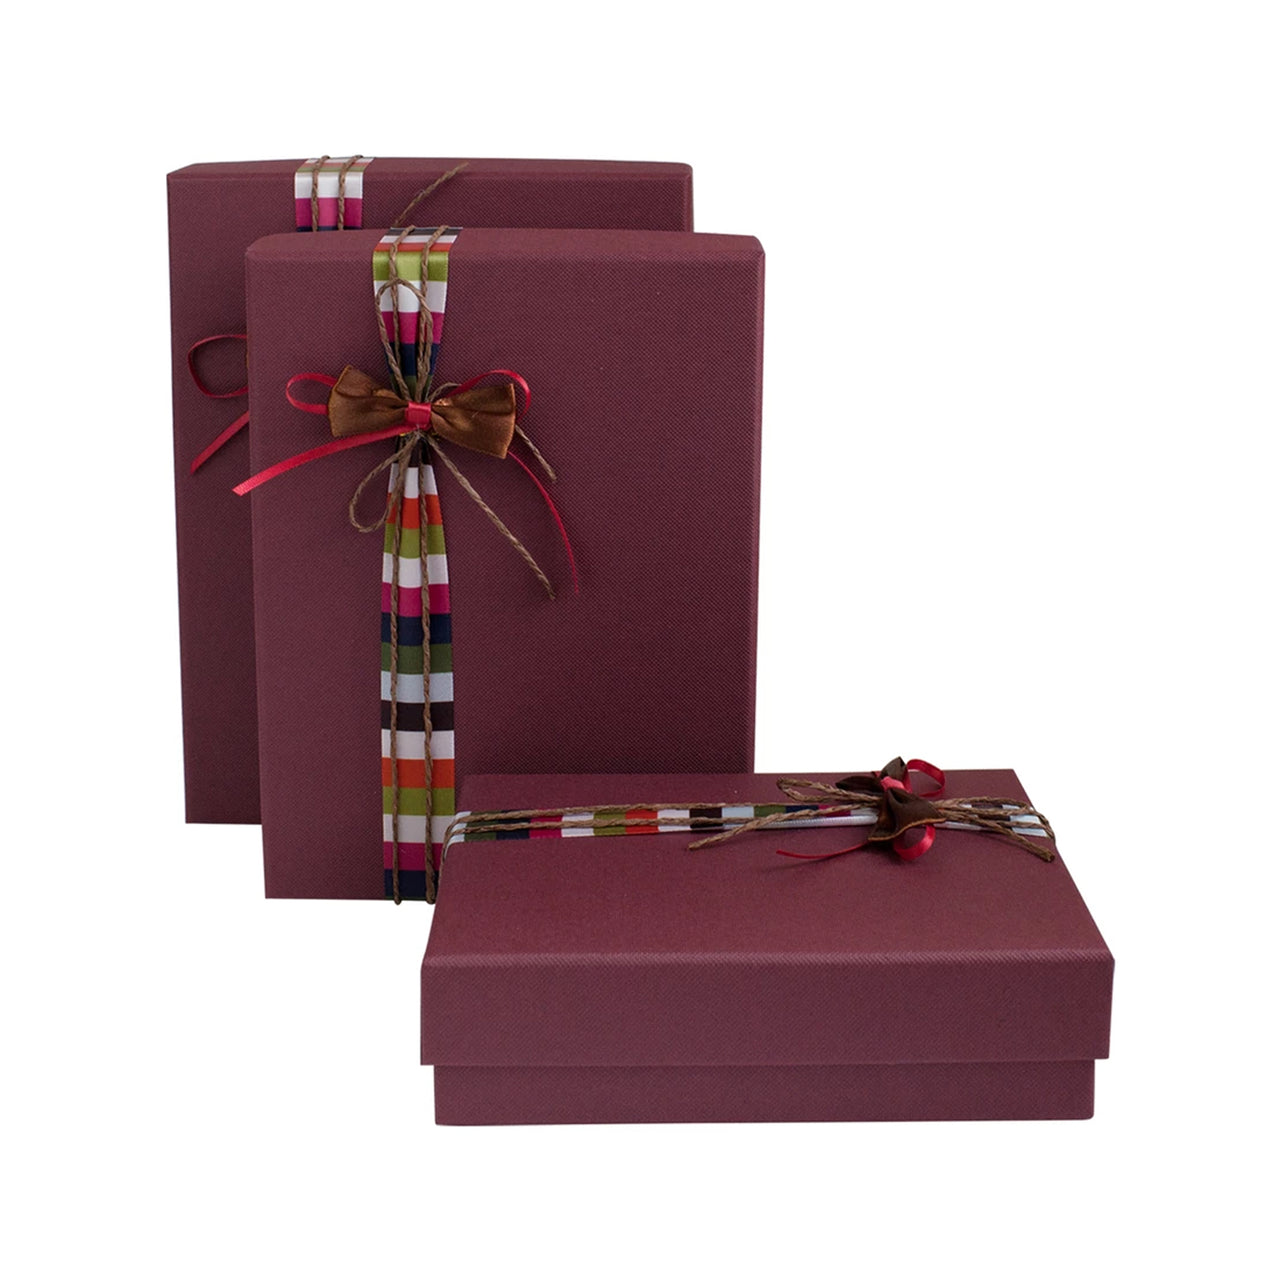 Burgundy Striped Bow Gift Box - Set of 3